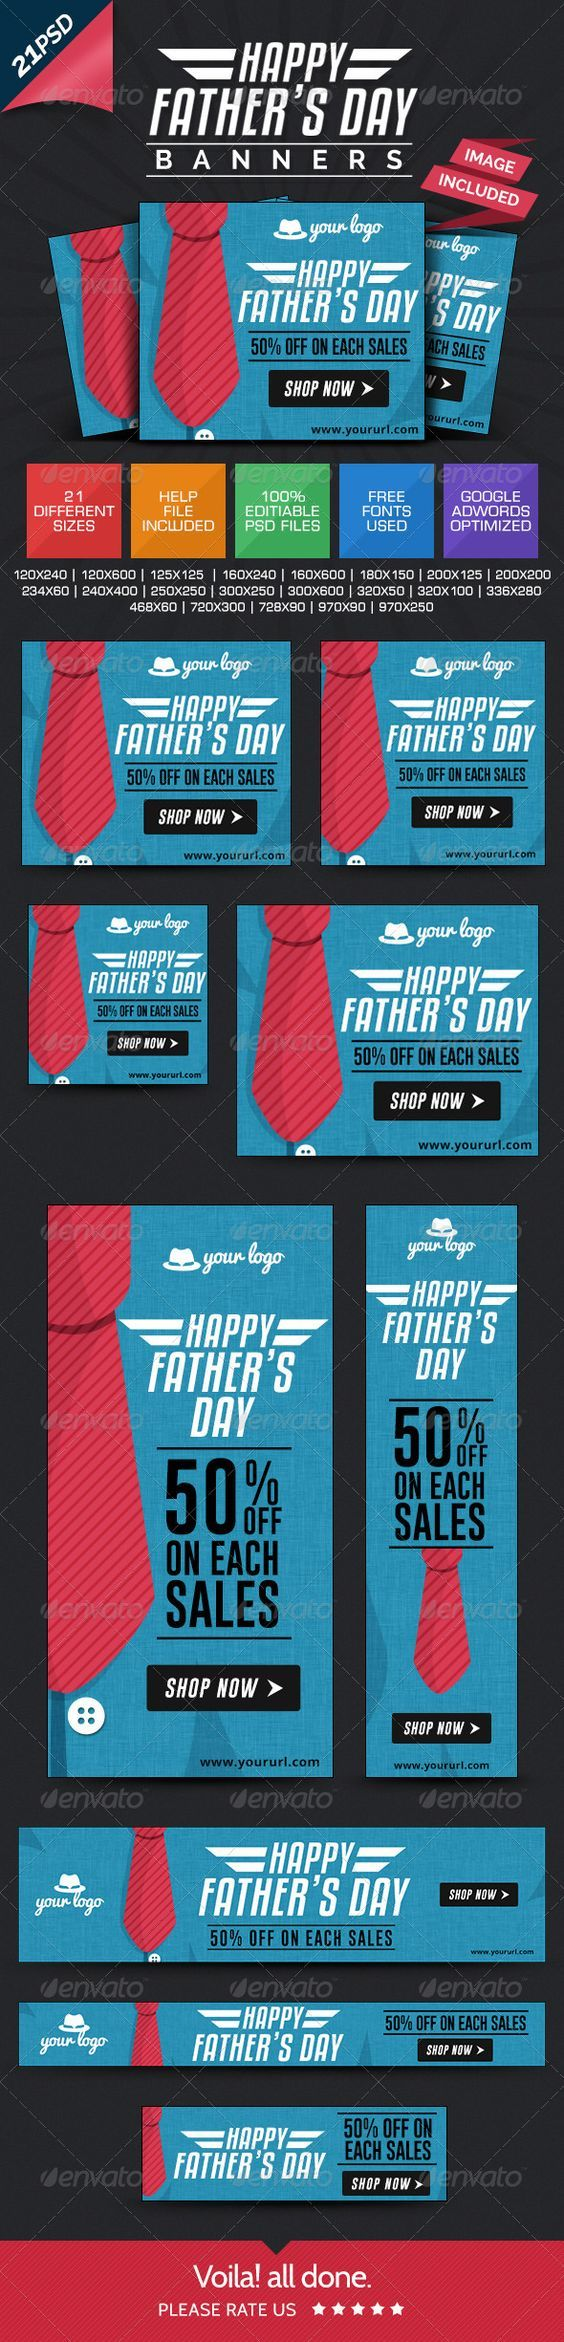 Father's day Banners Template PSD | Buy and Download: http://graphicriver.net/item/fathers-day-banners/7912202?WT.ac=category_thumb&WT.z_author=doto&ref=ksioks: